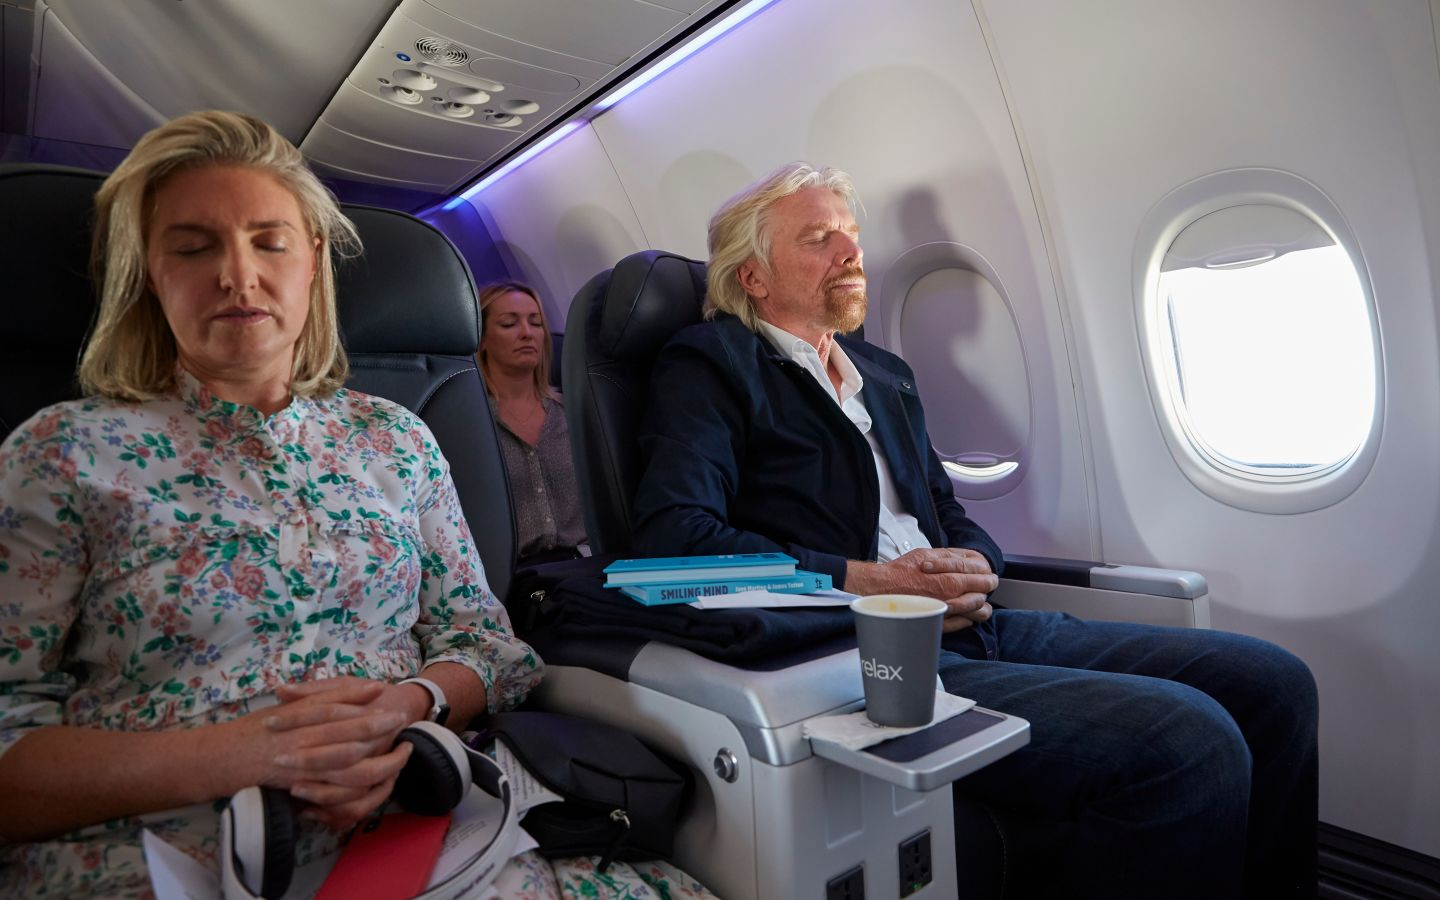 Richard Branson sitting on a plane, with his eyes shut, meditating. There is a women next to him and in the seat behind, also meditating.